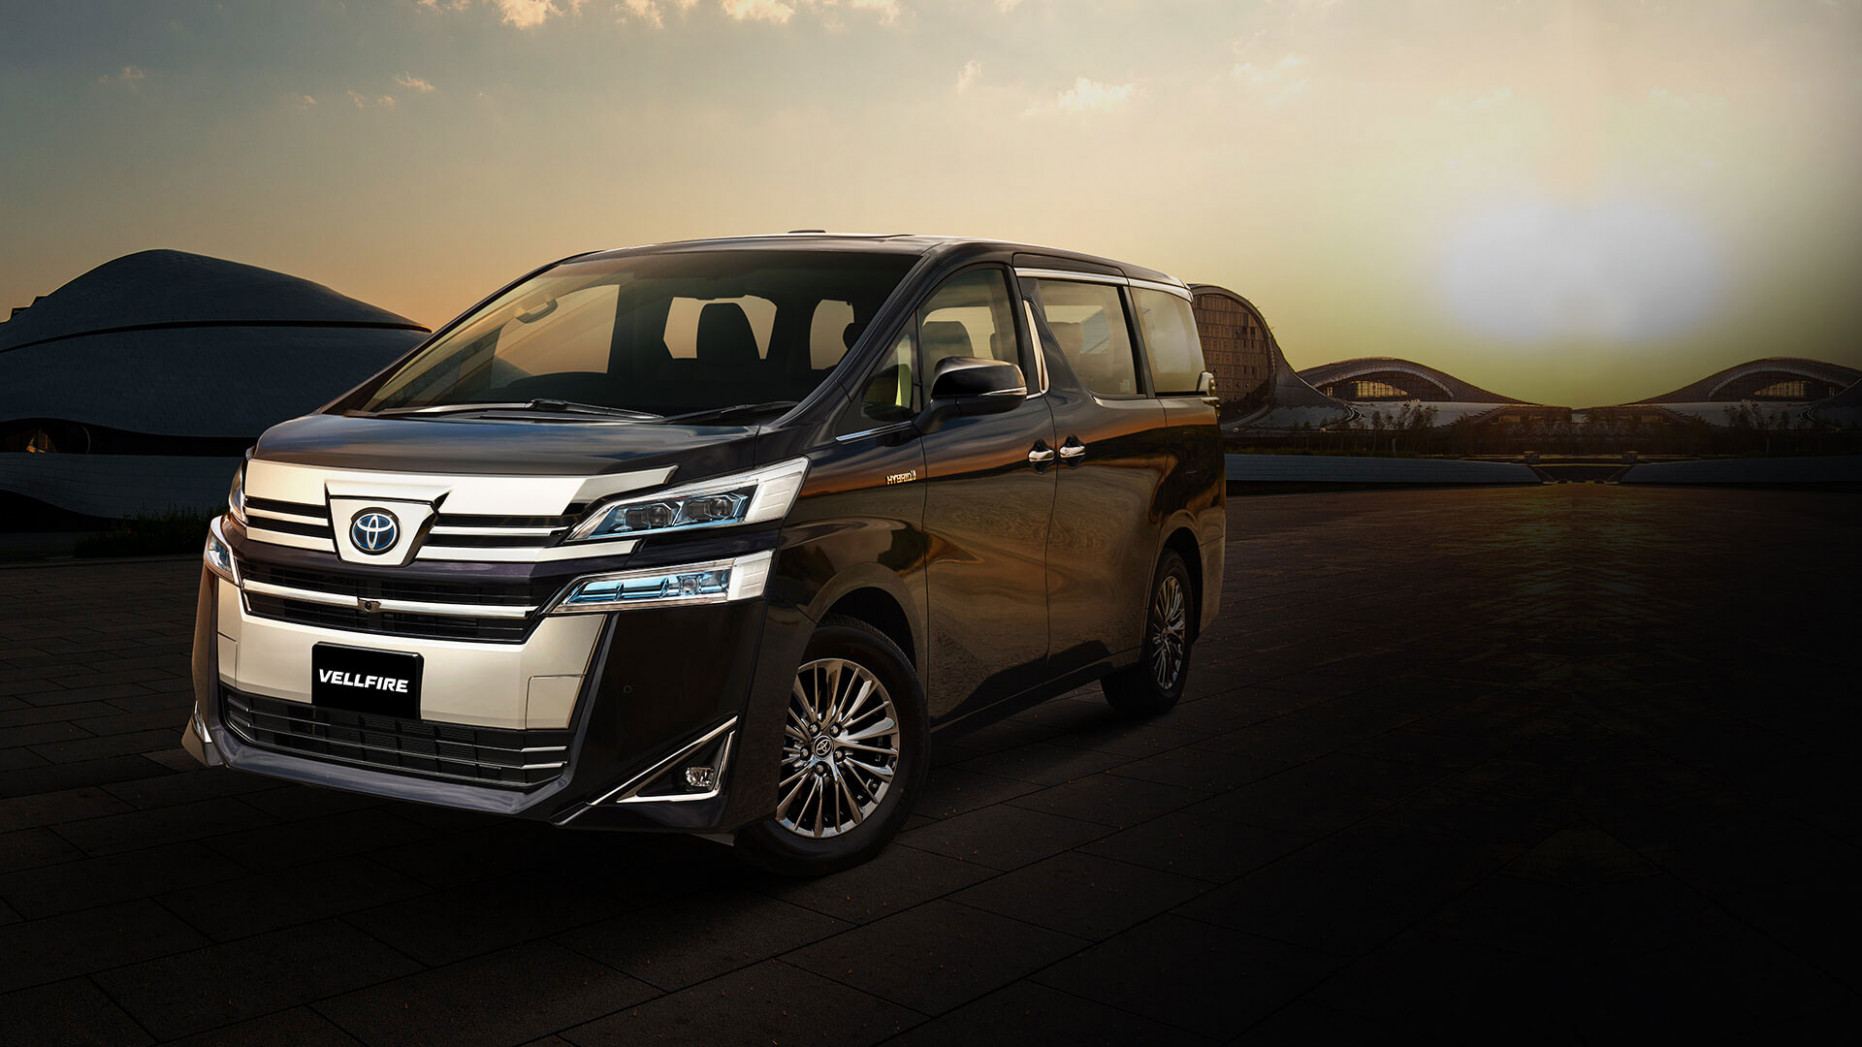 Toyota Vellfire launched in India, priced at INR 7.7 lakh